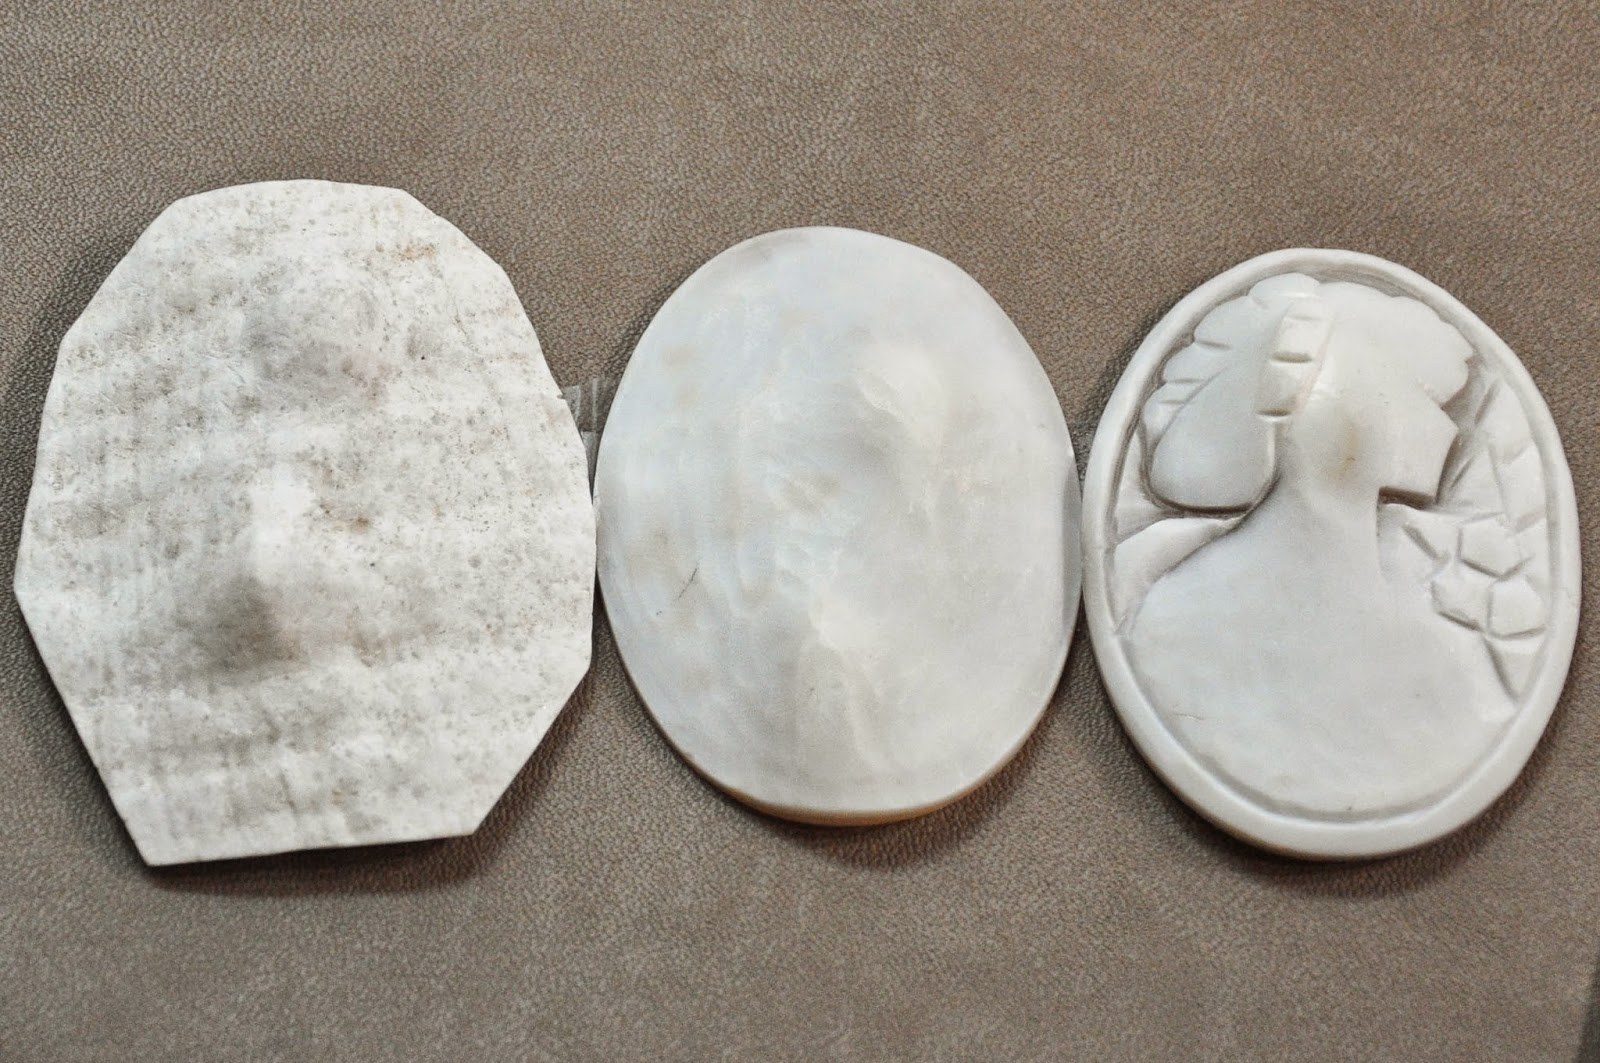 The different stages of cameo carving